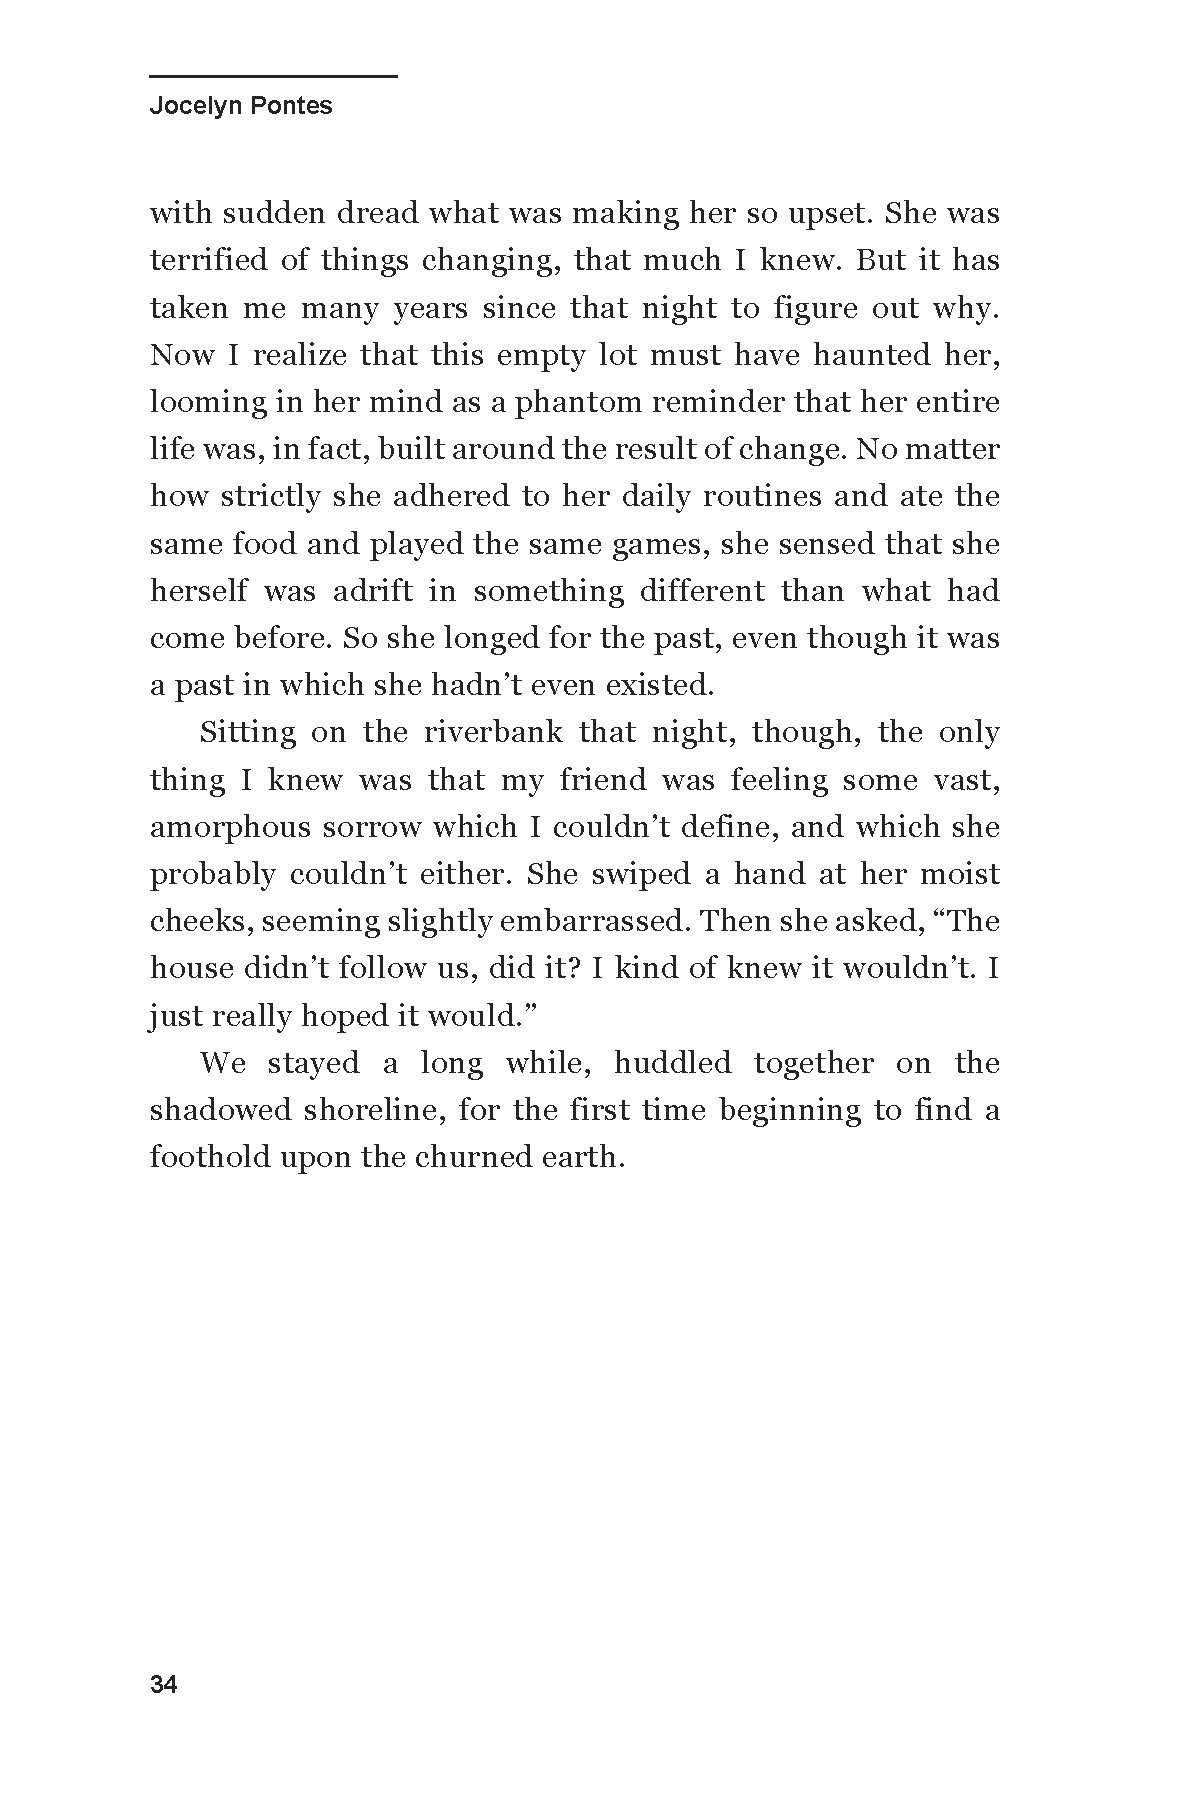 The Internal Ashes, page 34